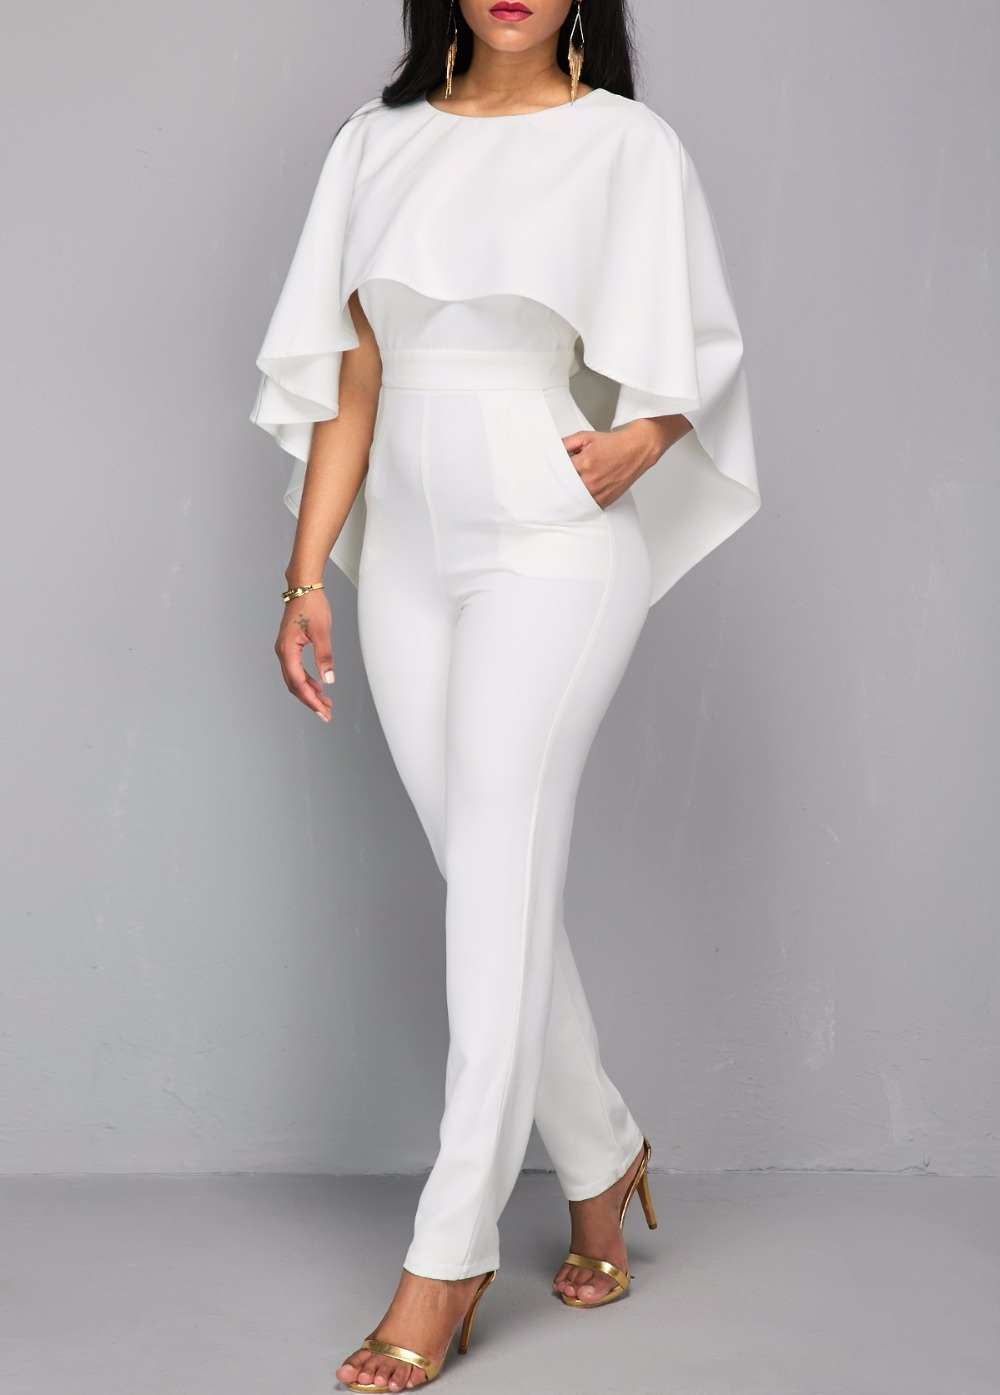 White Jumpsuit For Women - Plain White Romper